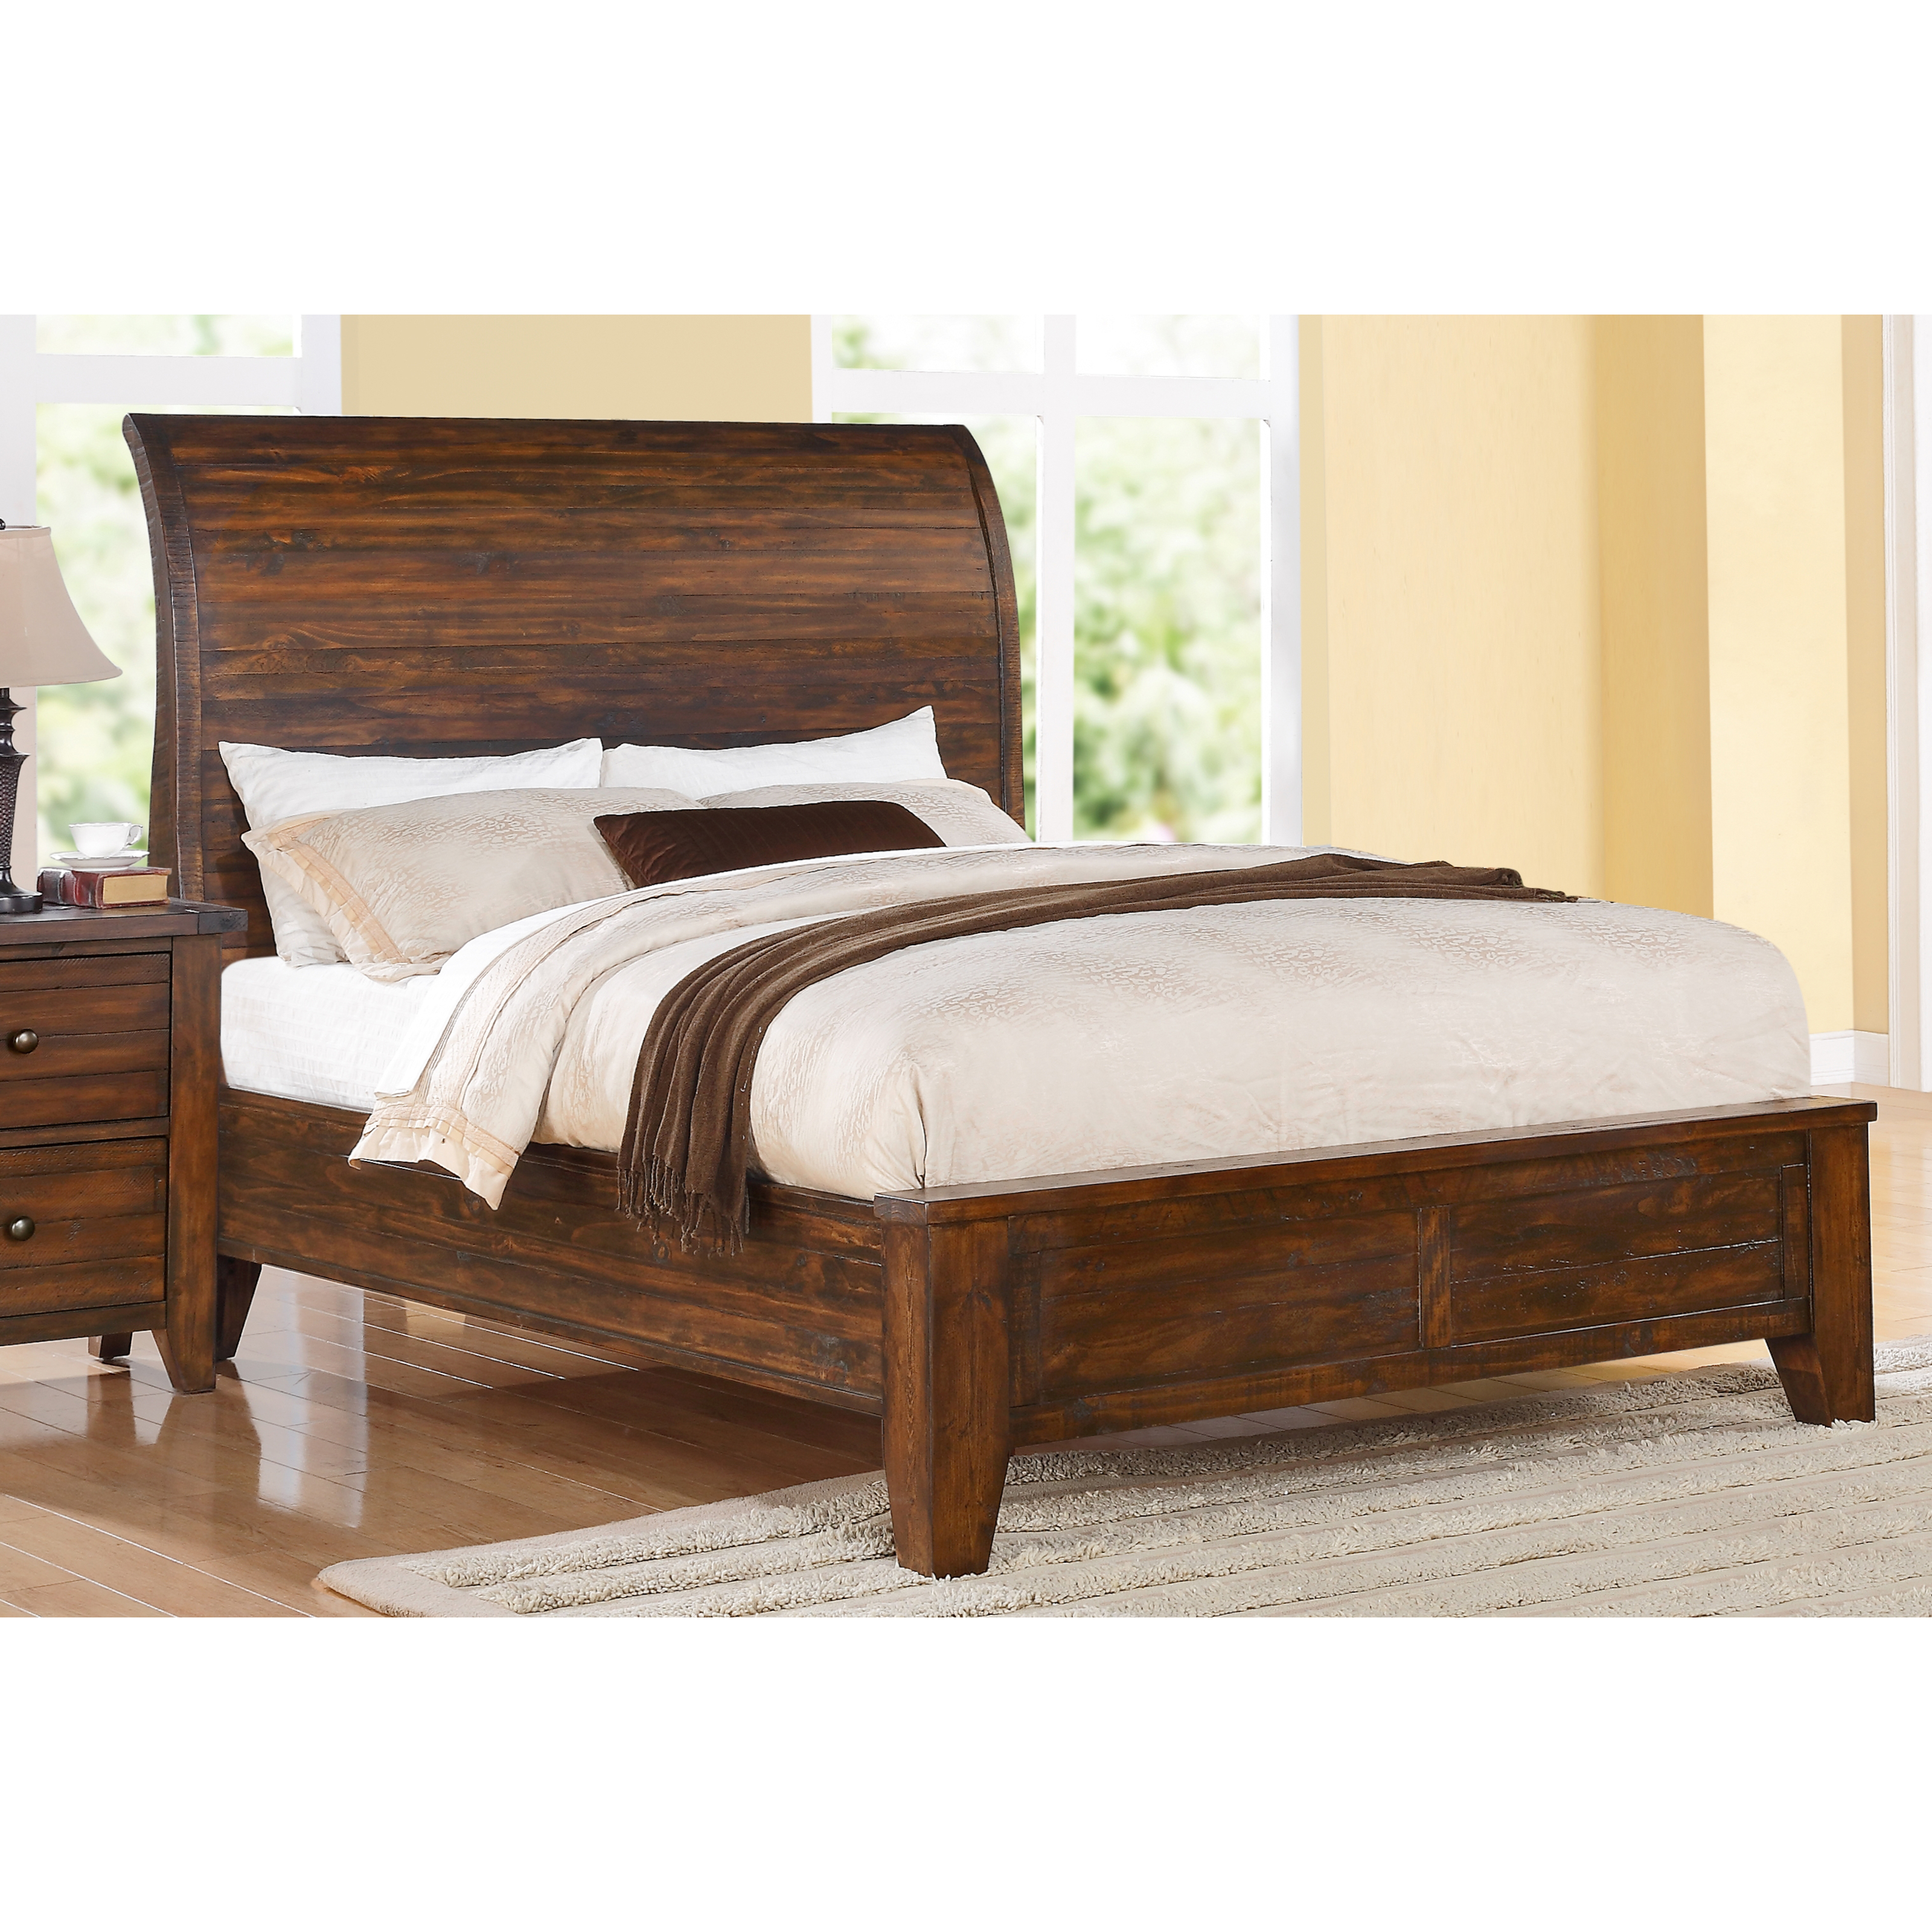 Cally solid wood bed beds at hayneedle